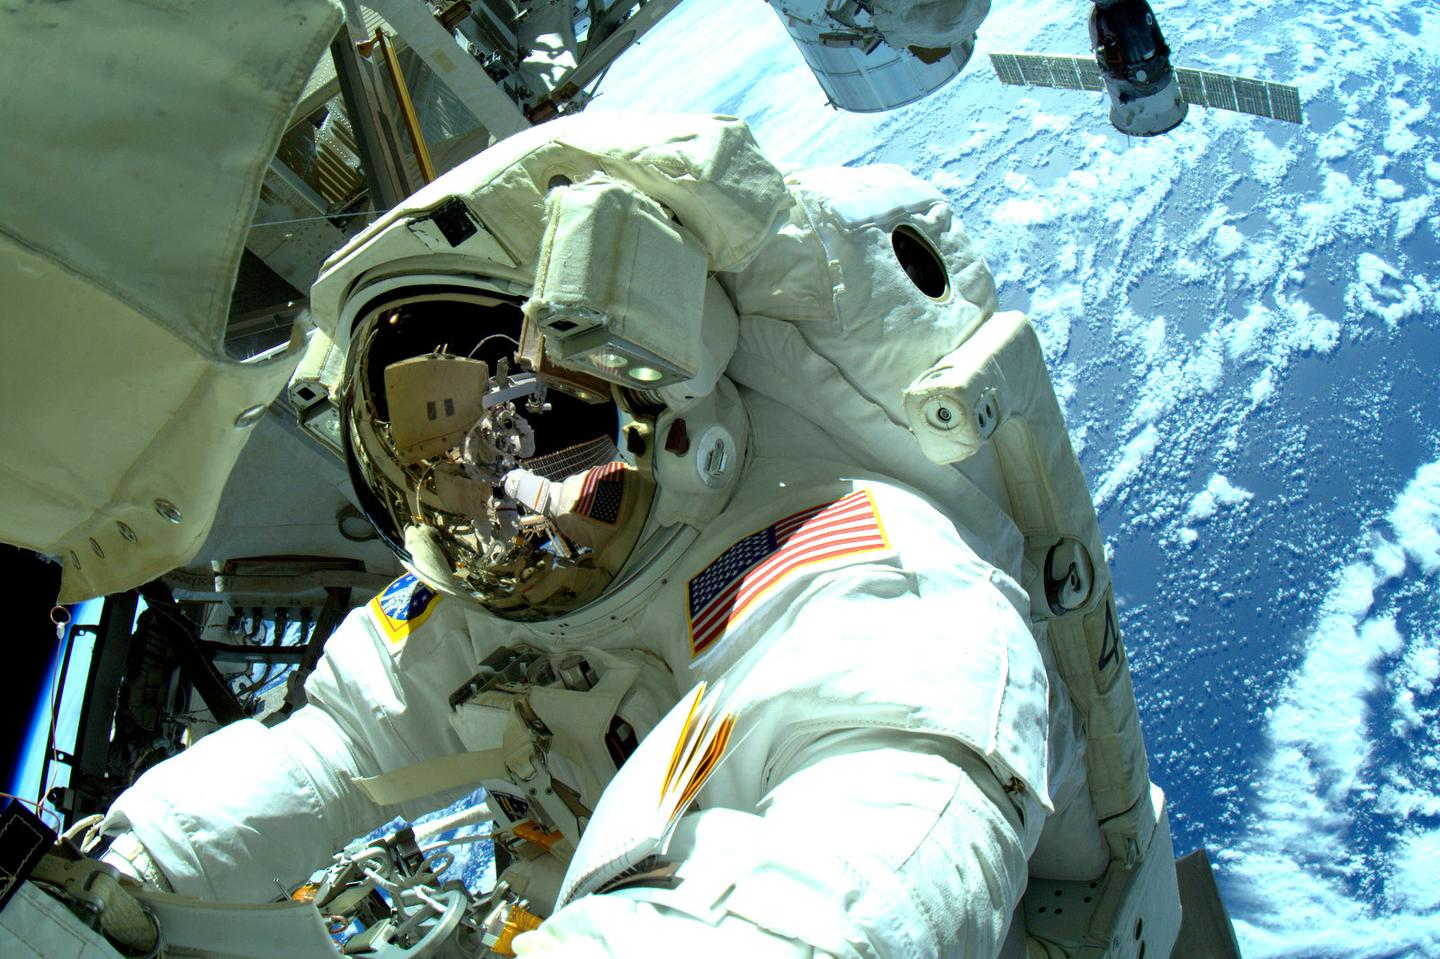 Commander Barry Wilmore accompanied Terry Virts on a spacewalk to reconfigure the ISS for a new docking port (Photo: NASA)